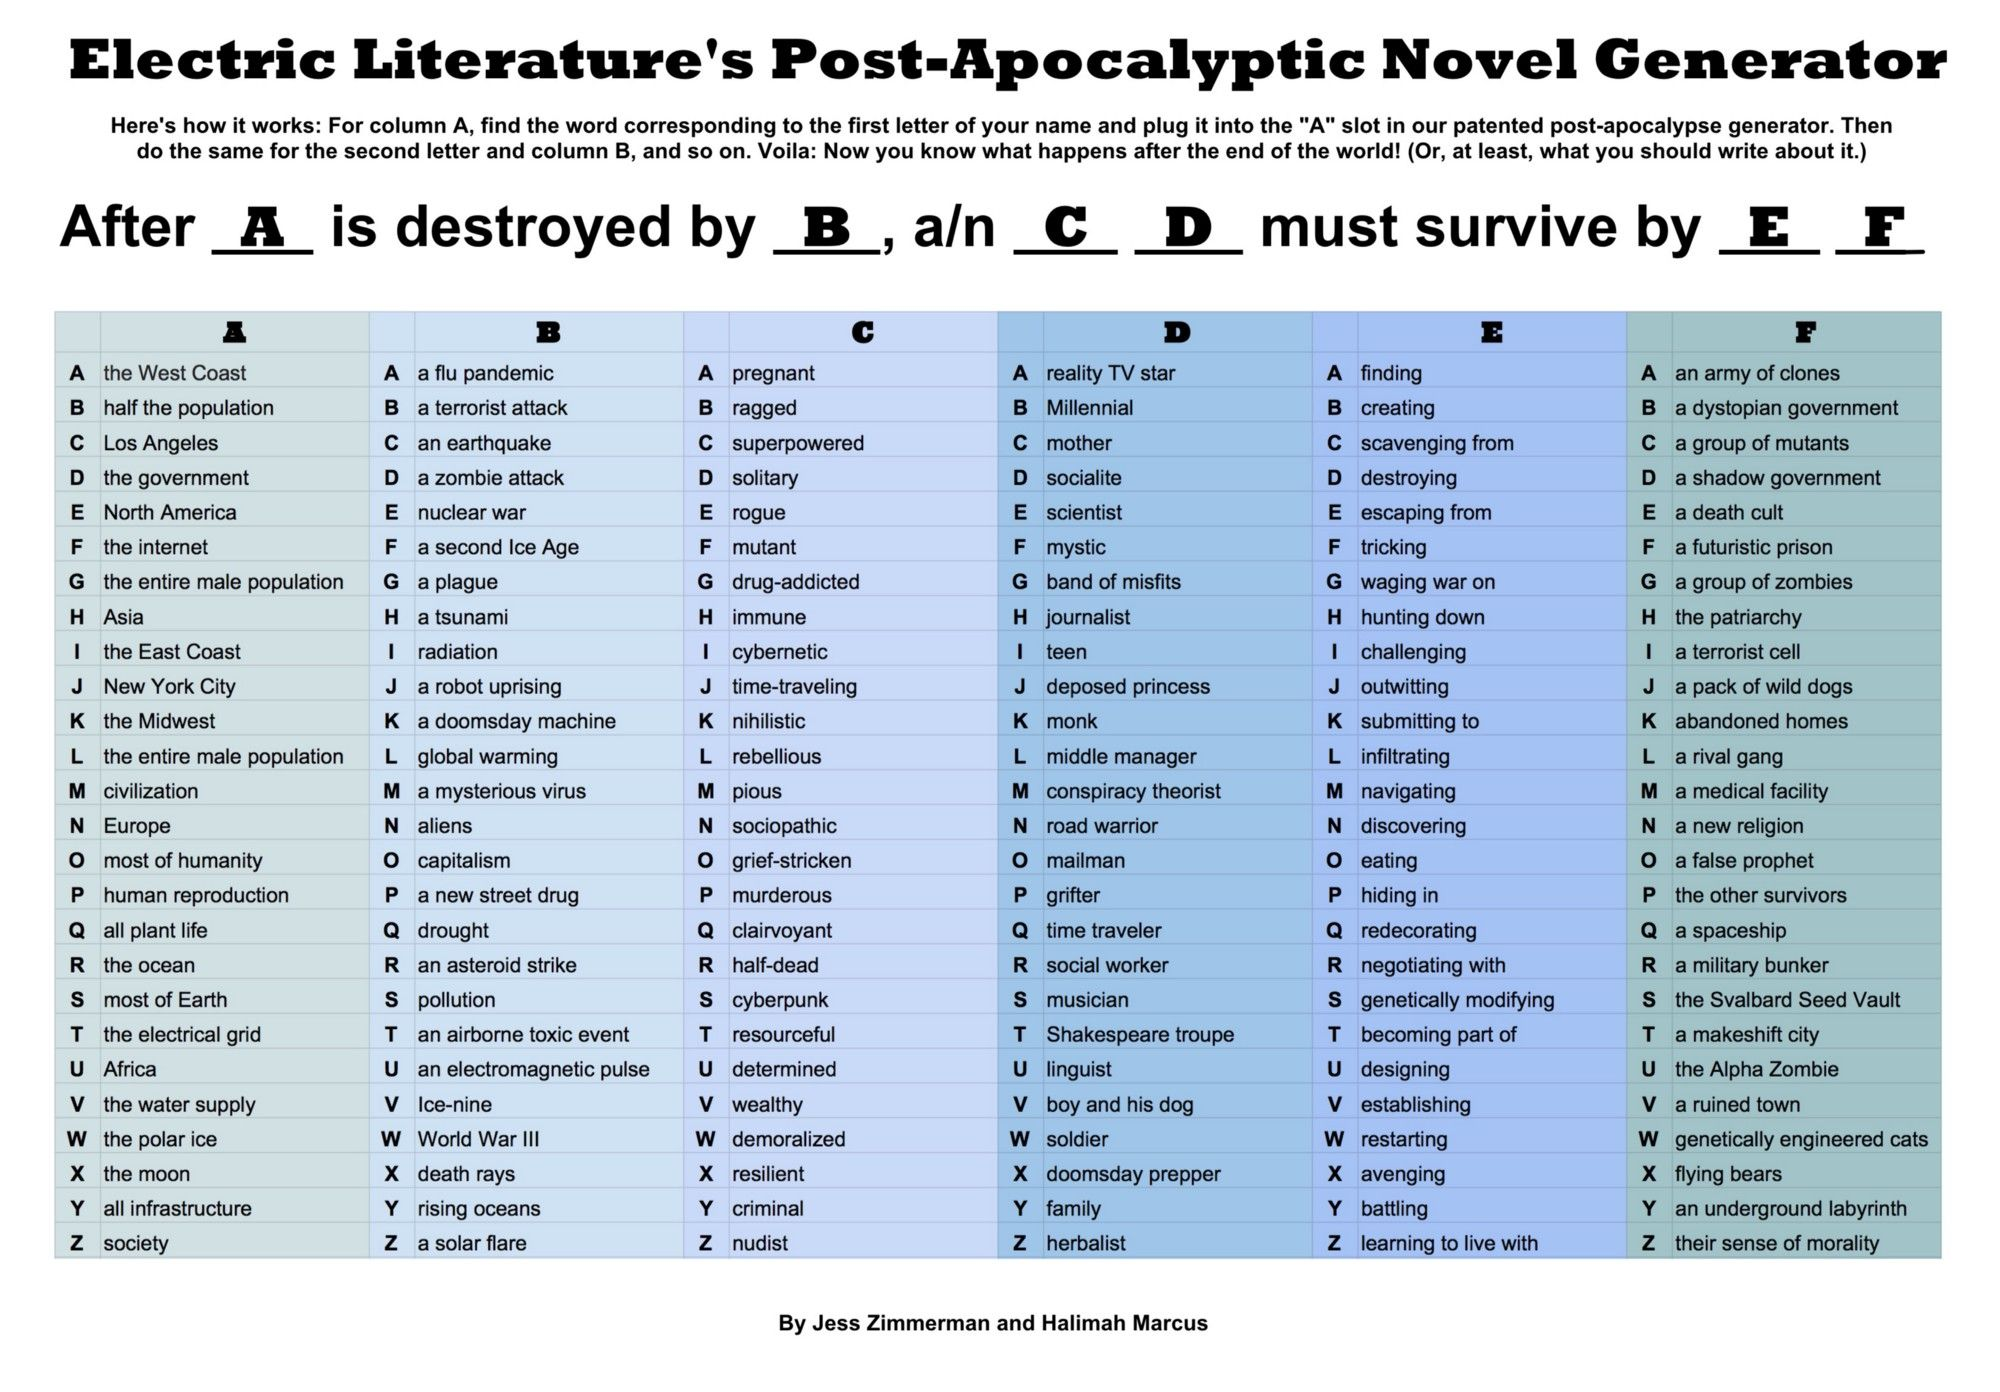 Discover The Plot Of Your Post Apocalyptic Novel With Our Handy Chart Electric Literature Post Apocalyptic Novels Dystopian Writing Prompts Daily Writing Prompts